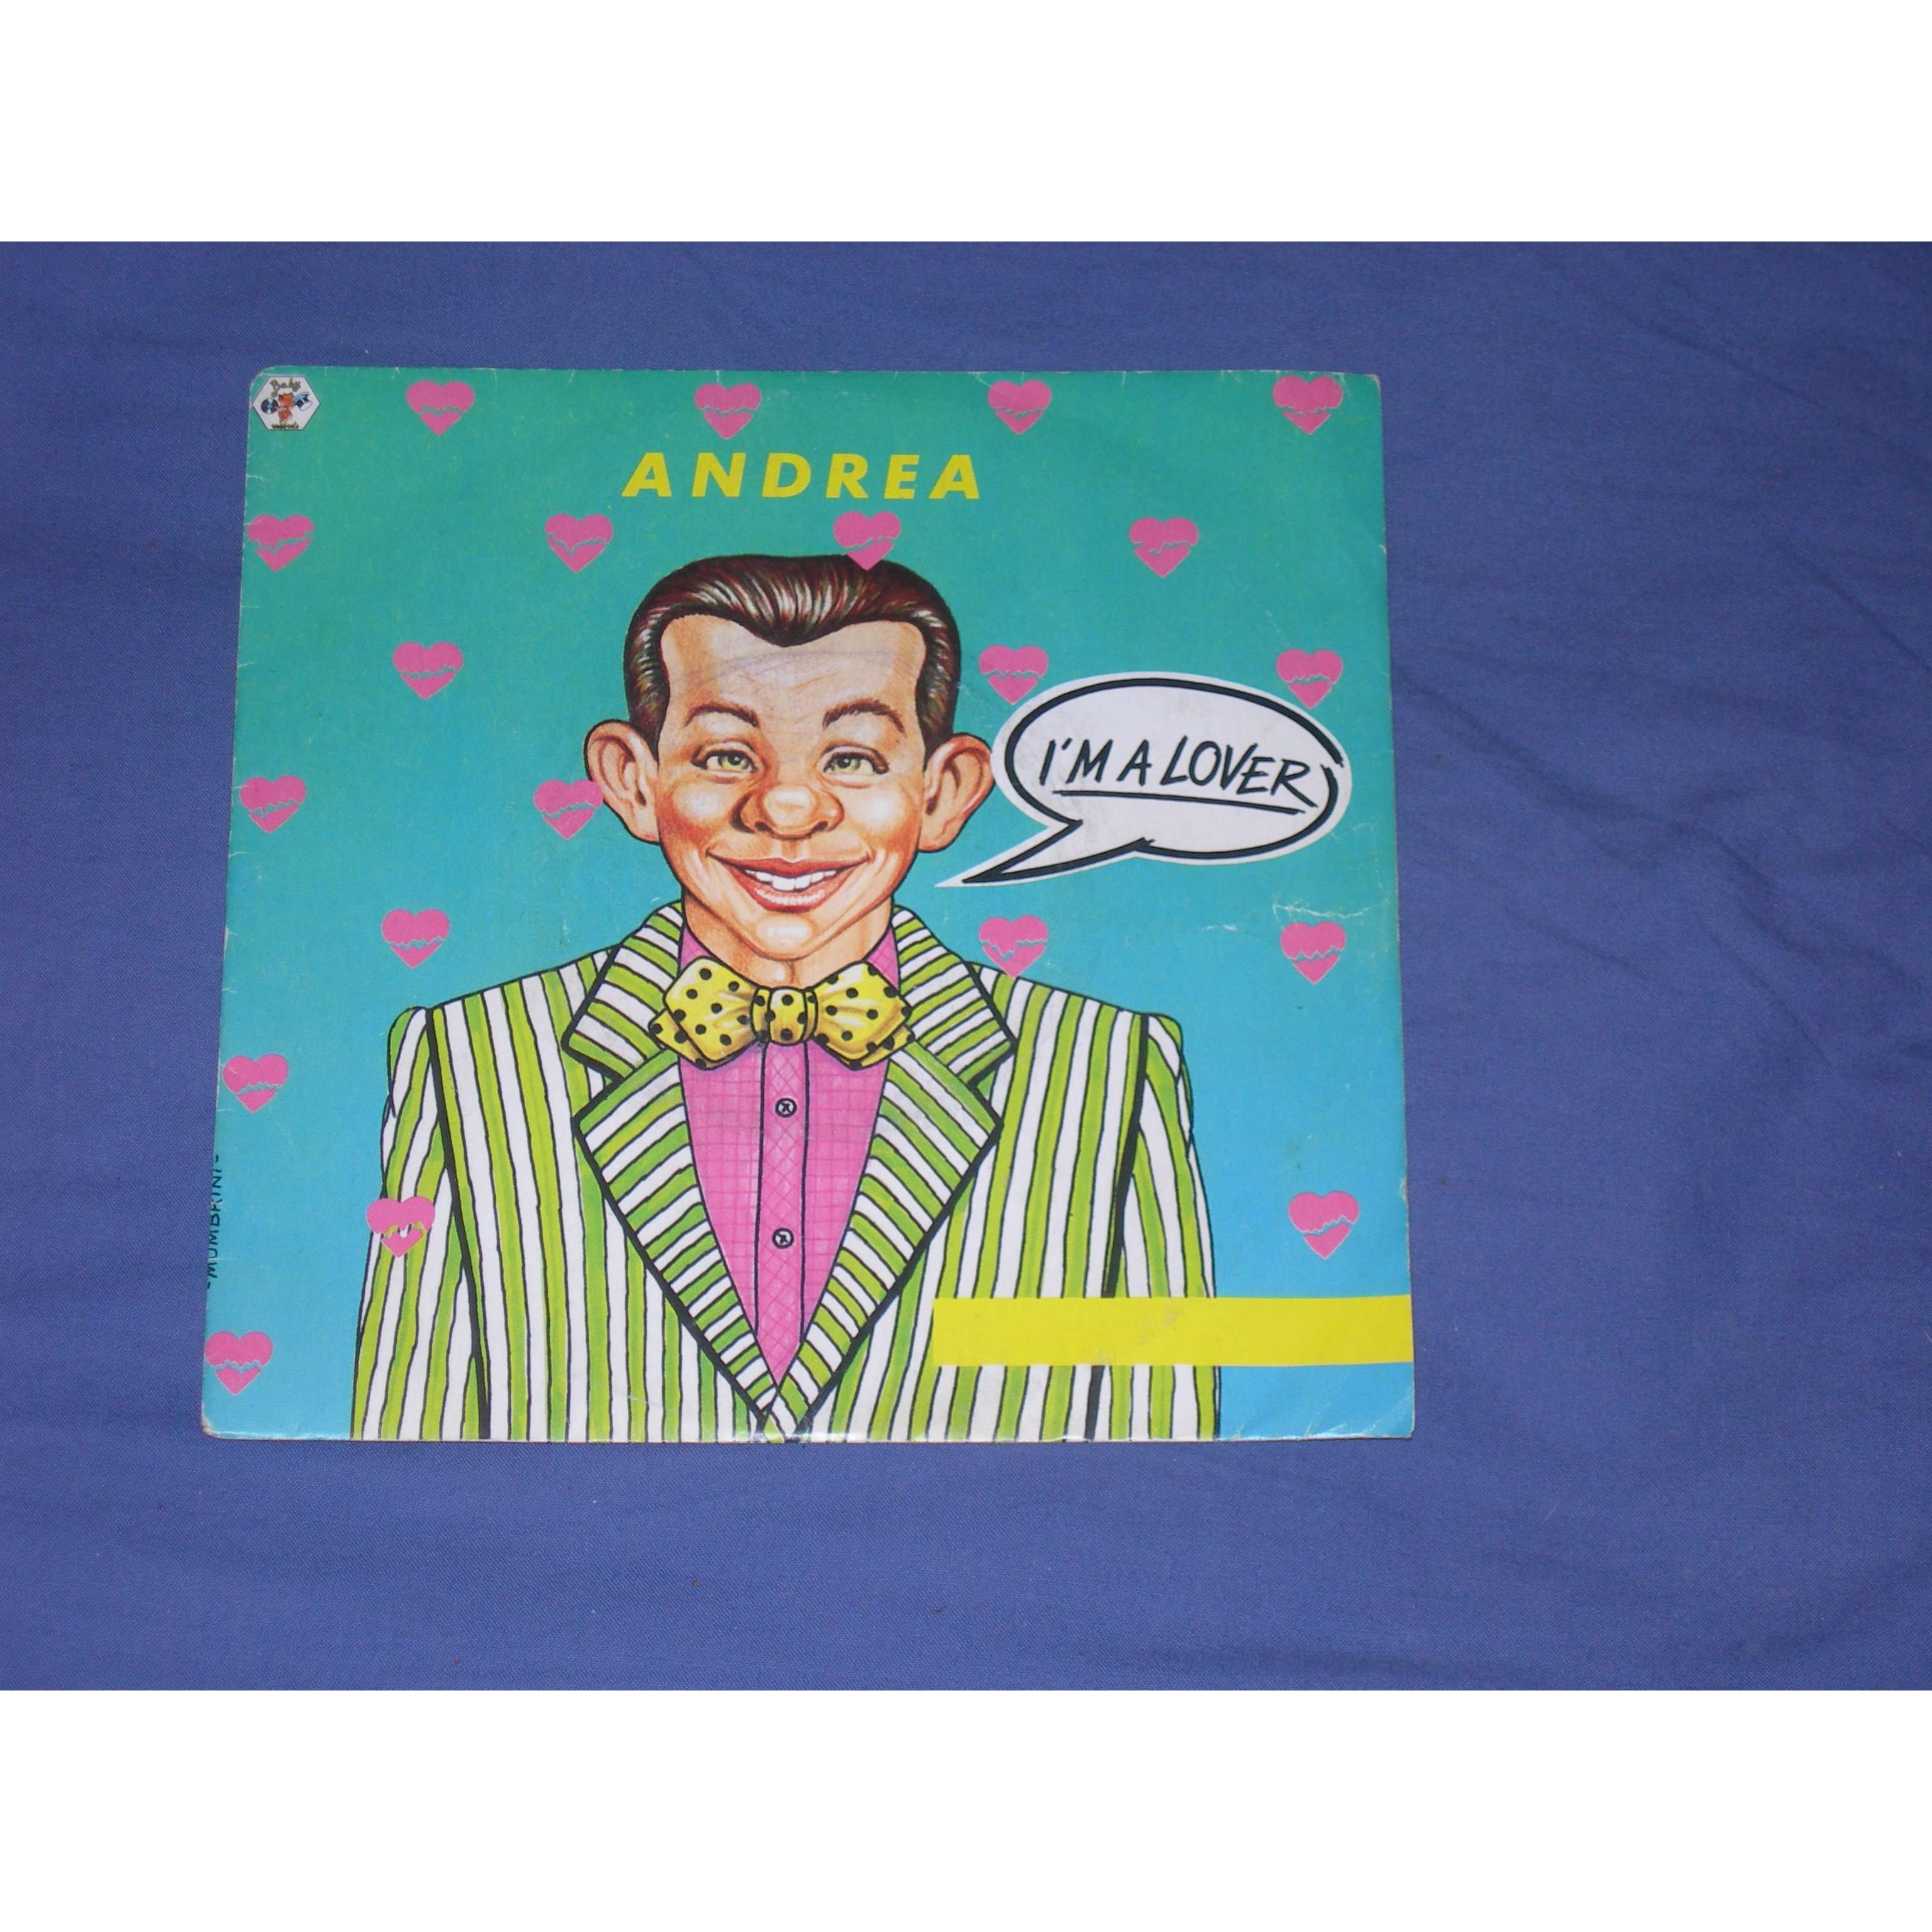 andrea i'm a lover _  /  i'm a lover